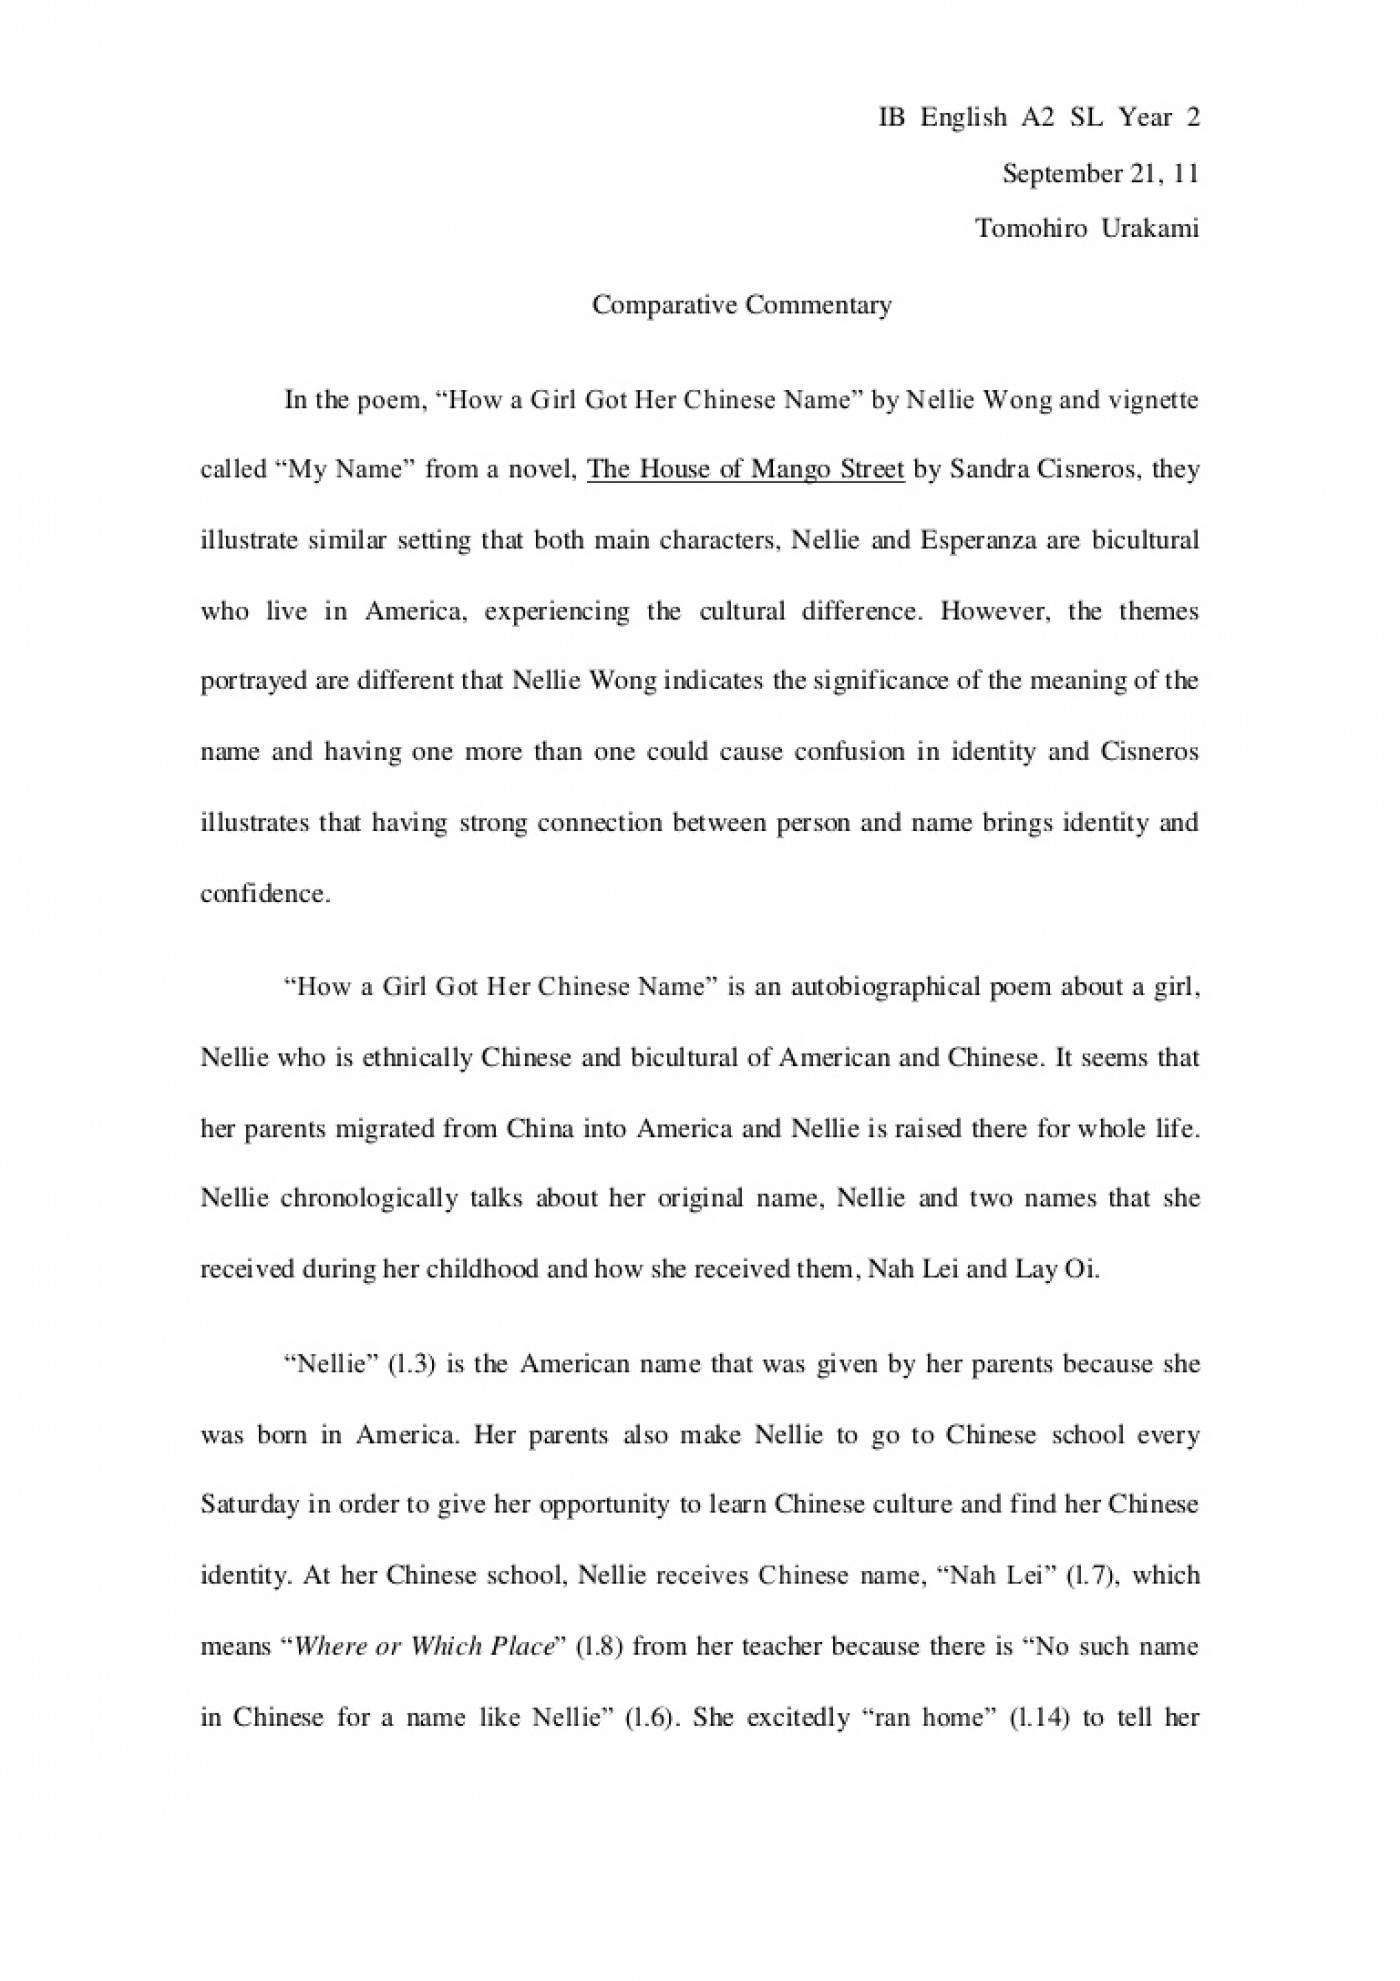 007 Essay Example Comparativeessaydraft Phpapp02 Thumbnail Comparative Beautiful Sample Vce English Introduction Template 1400